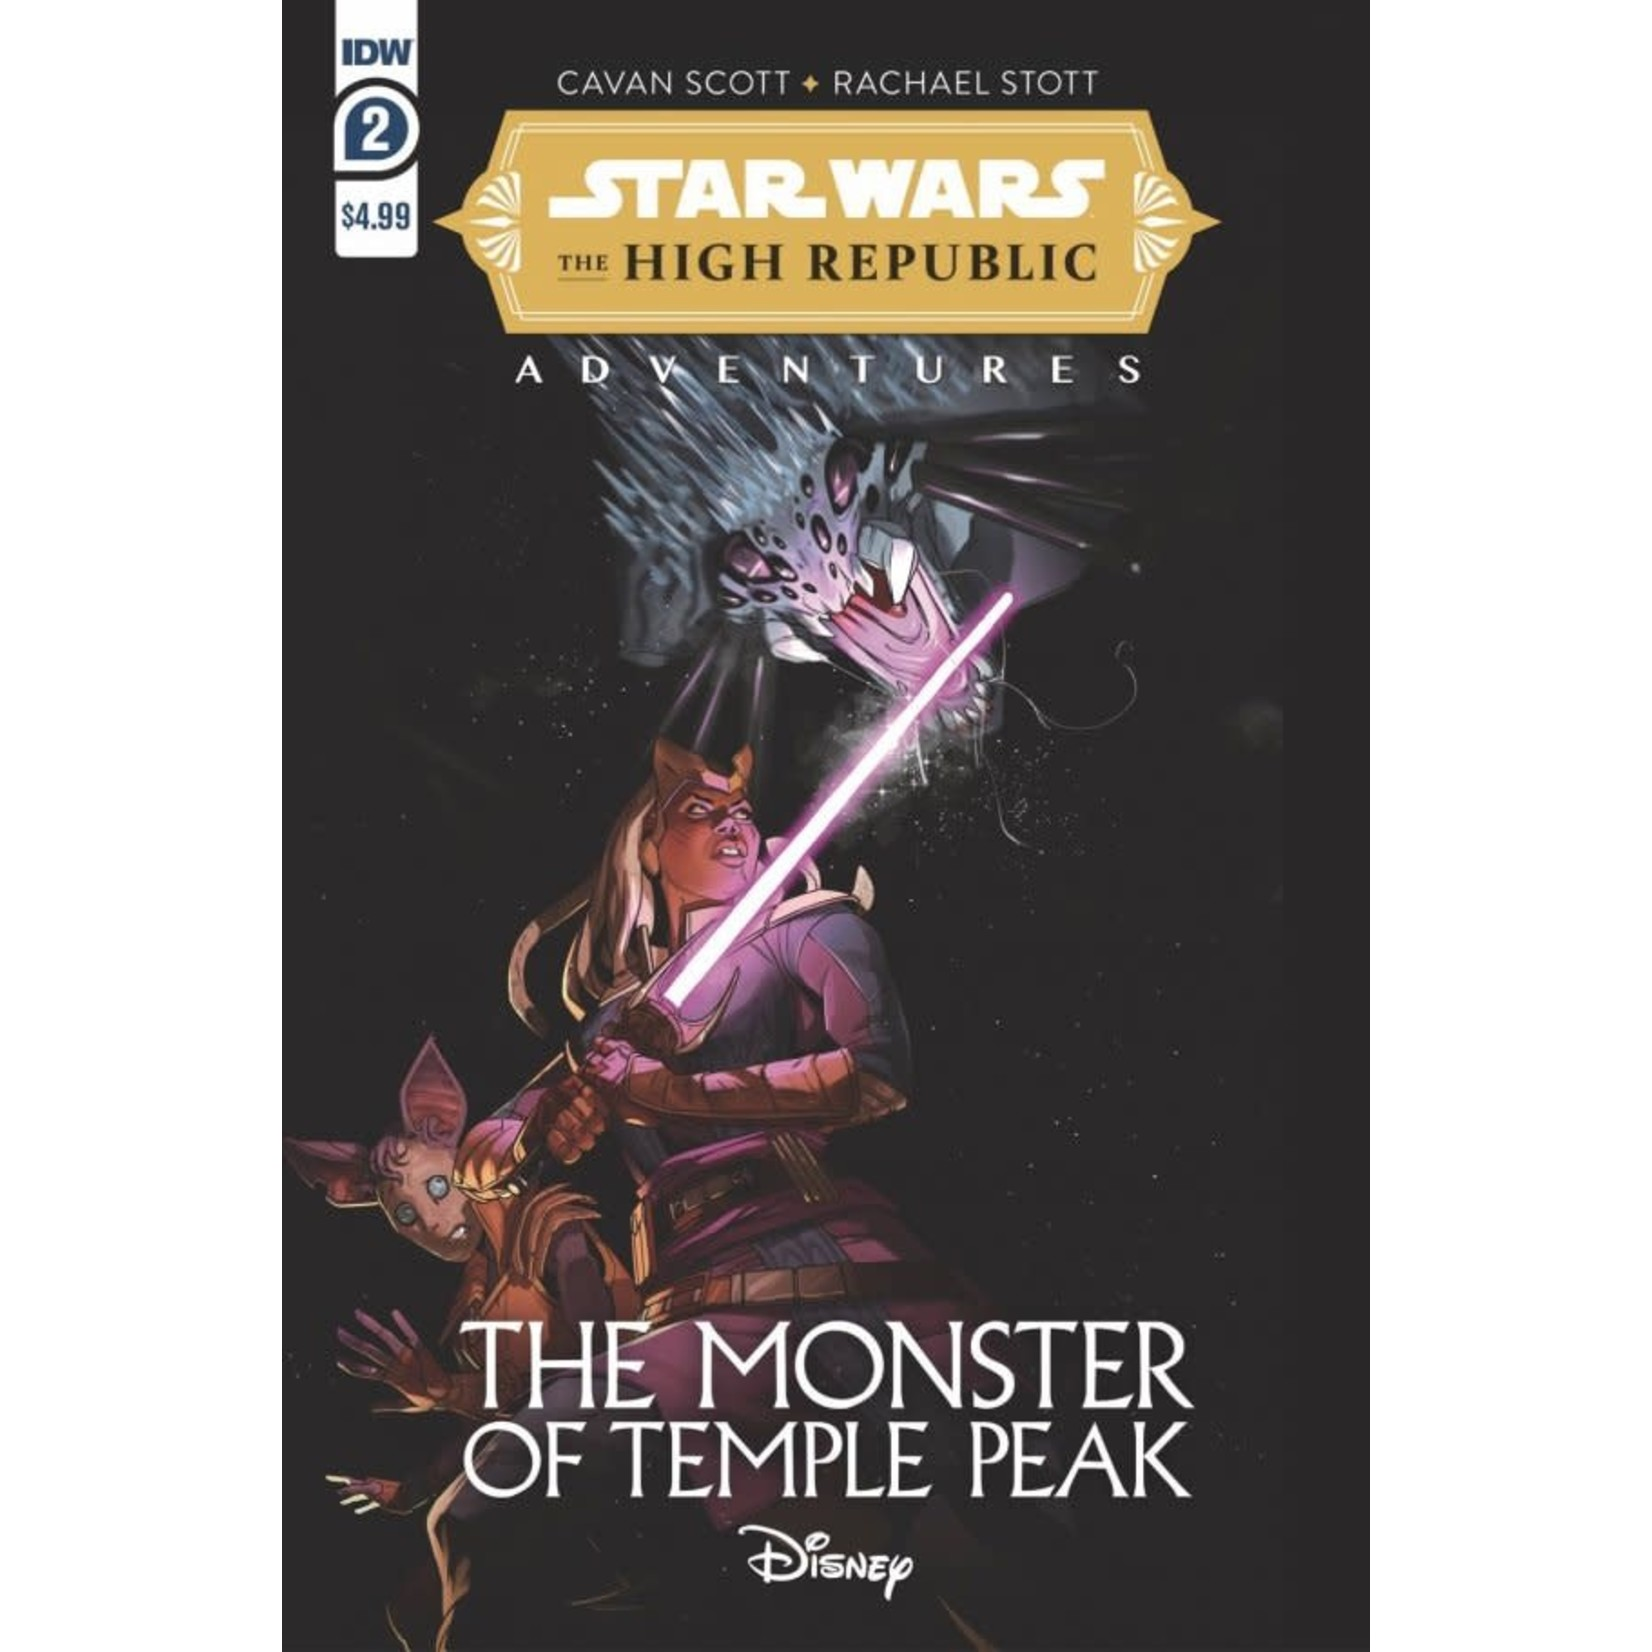 Star Wars: The High Republic Adventures - The Monster of Temple Peak #2